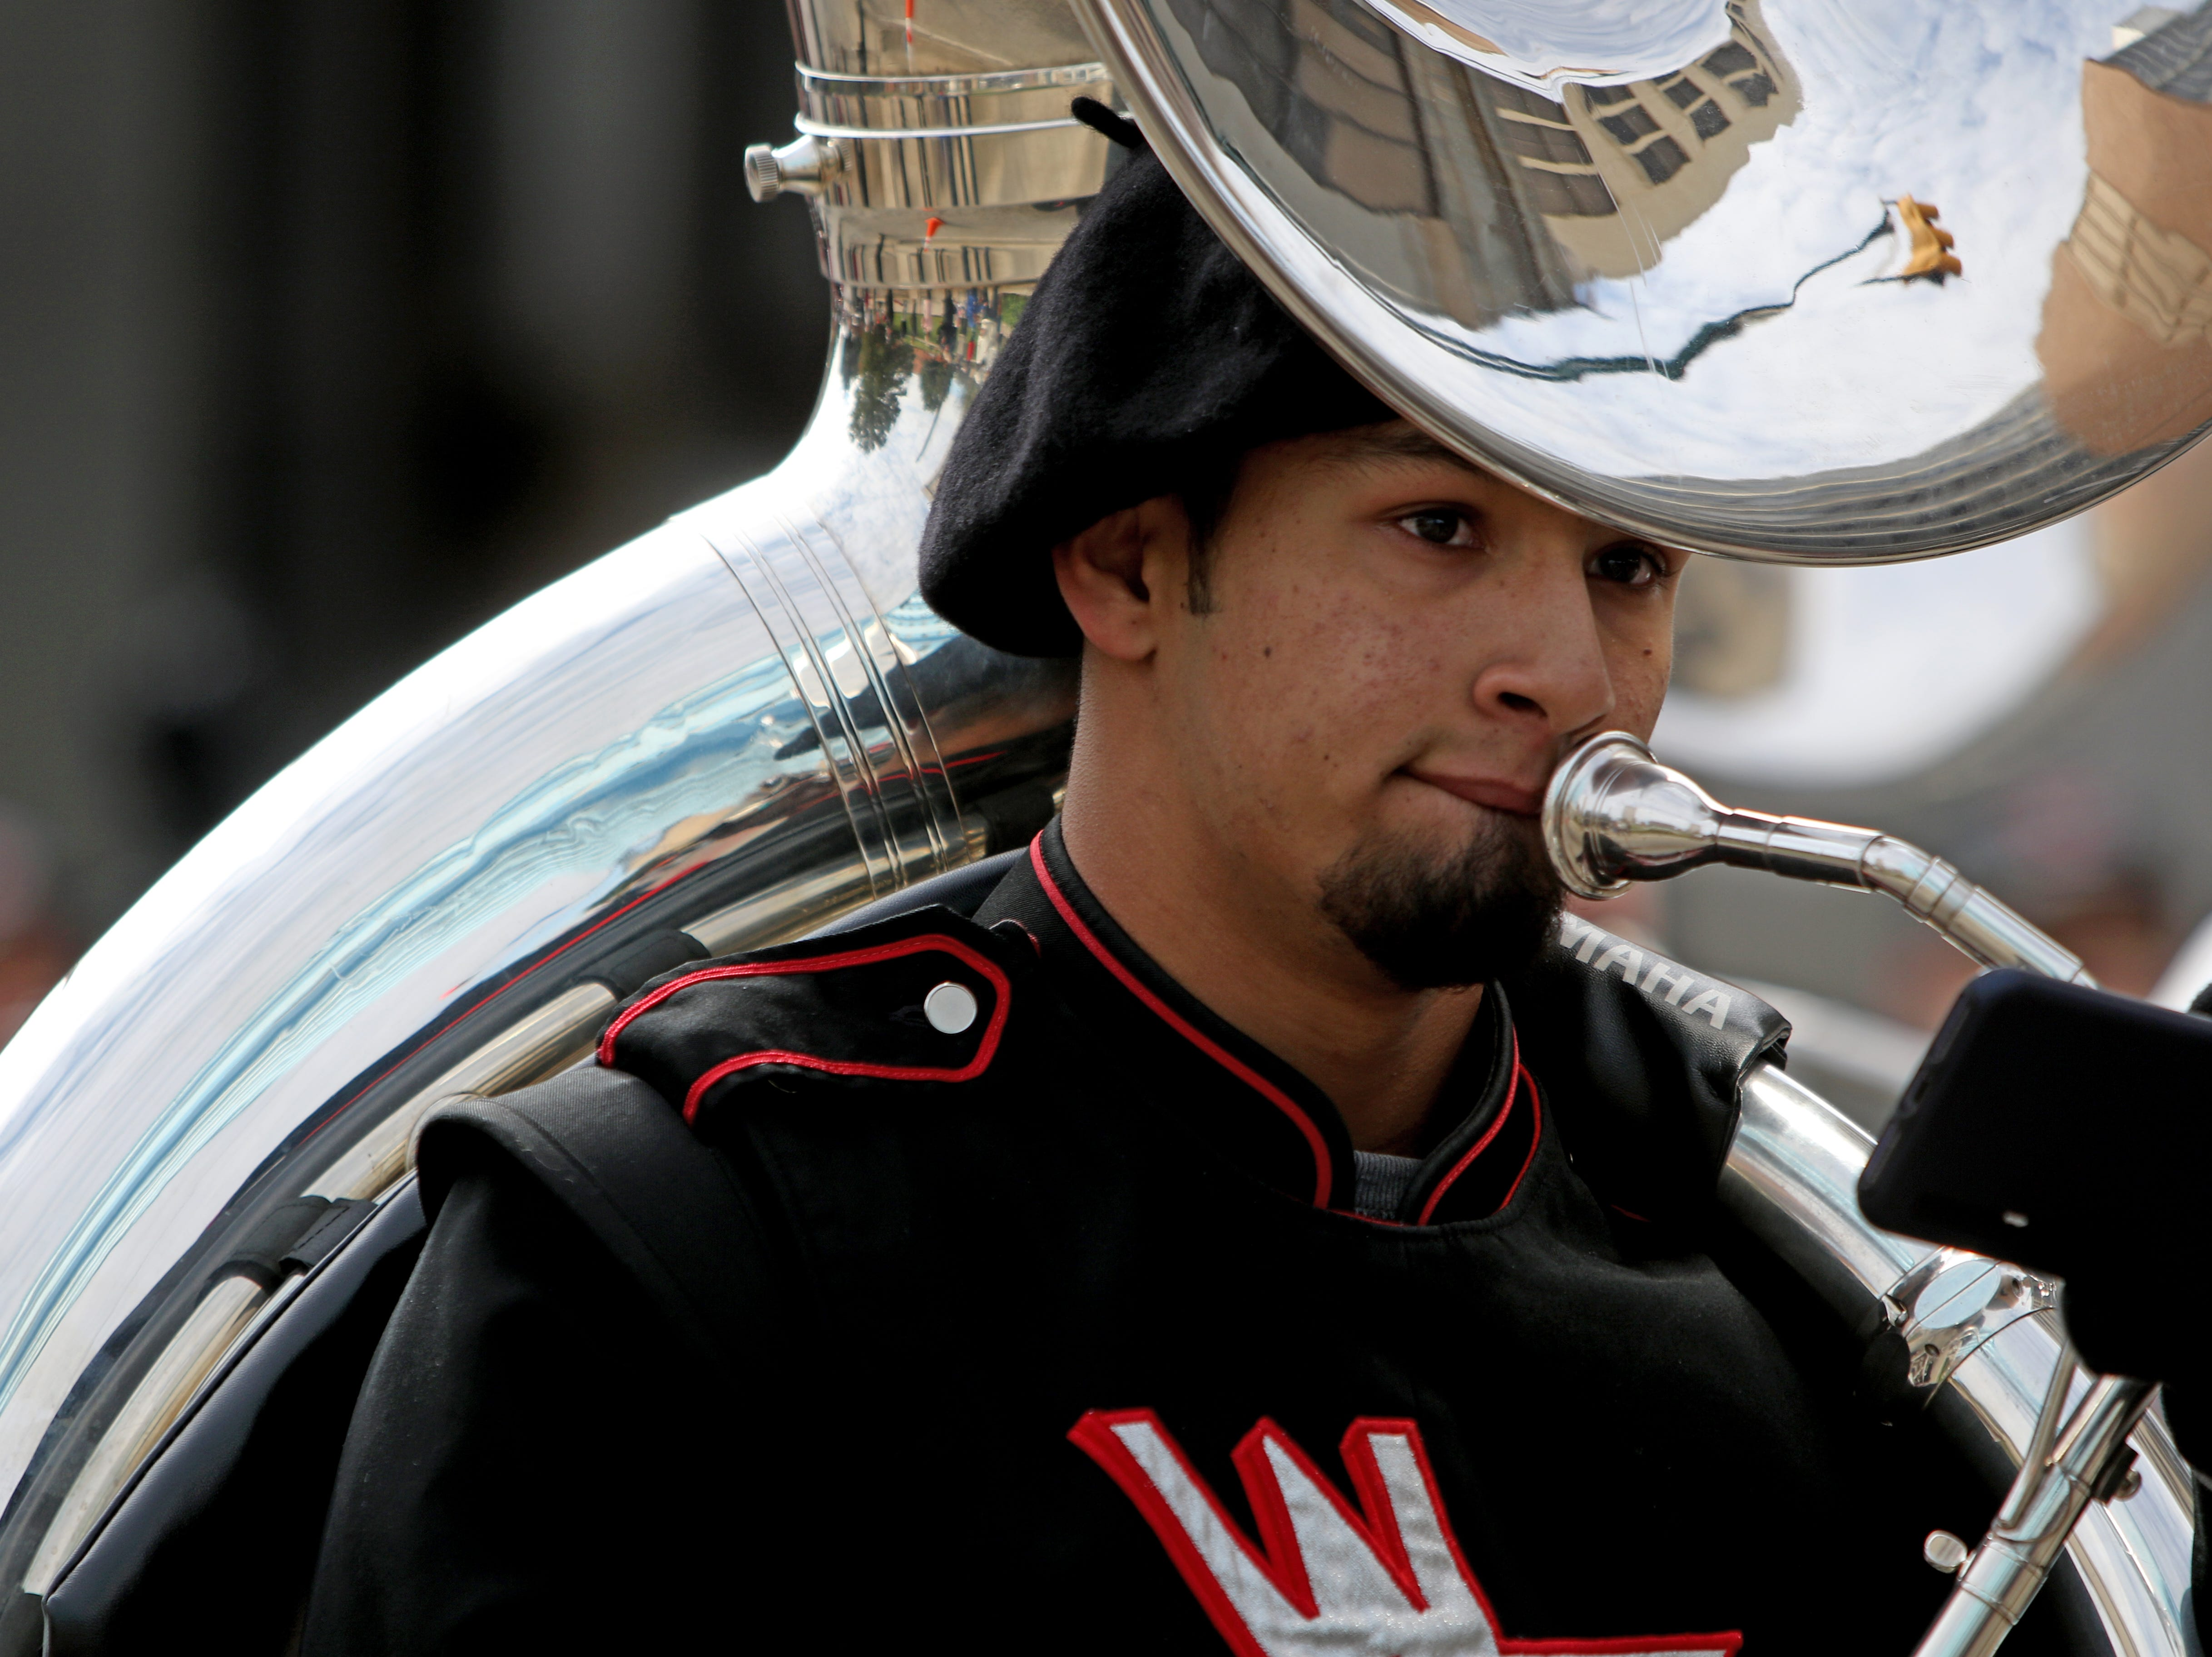 The Wichita Falls High School marching band takes part in the Veterans Day parade Saturday, Nov. 10, 2018, in downtown Wichita Falls on the 100th anniversary of the Armistice of Compiègne that ended fighting in World War I.